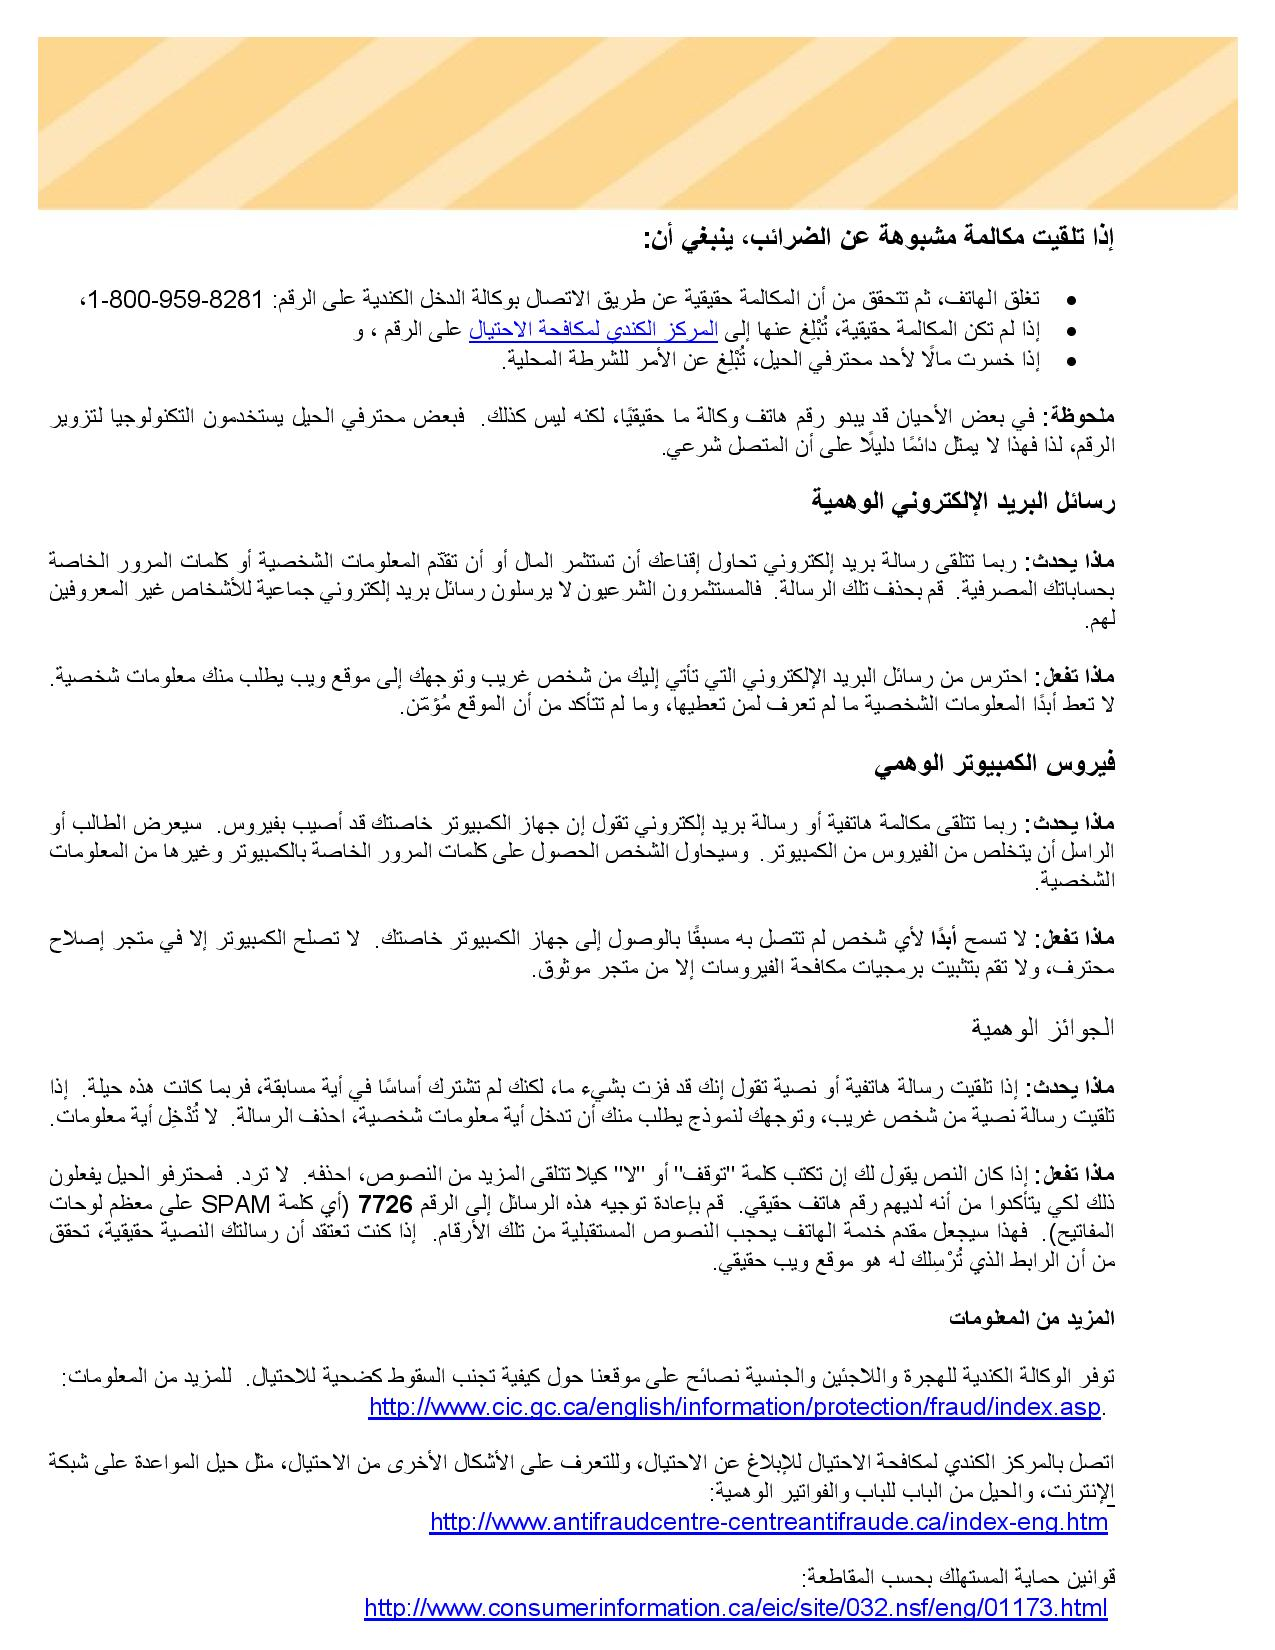 fraud_newcomers_arabic-page-002